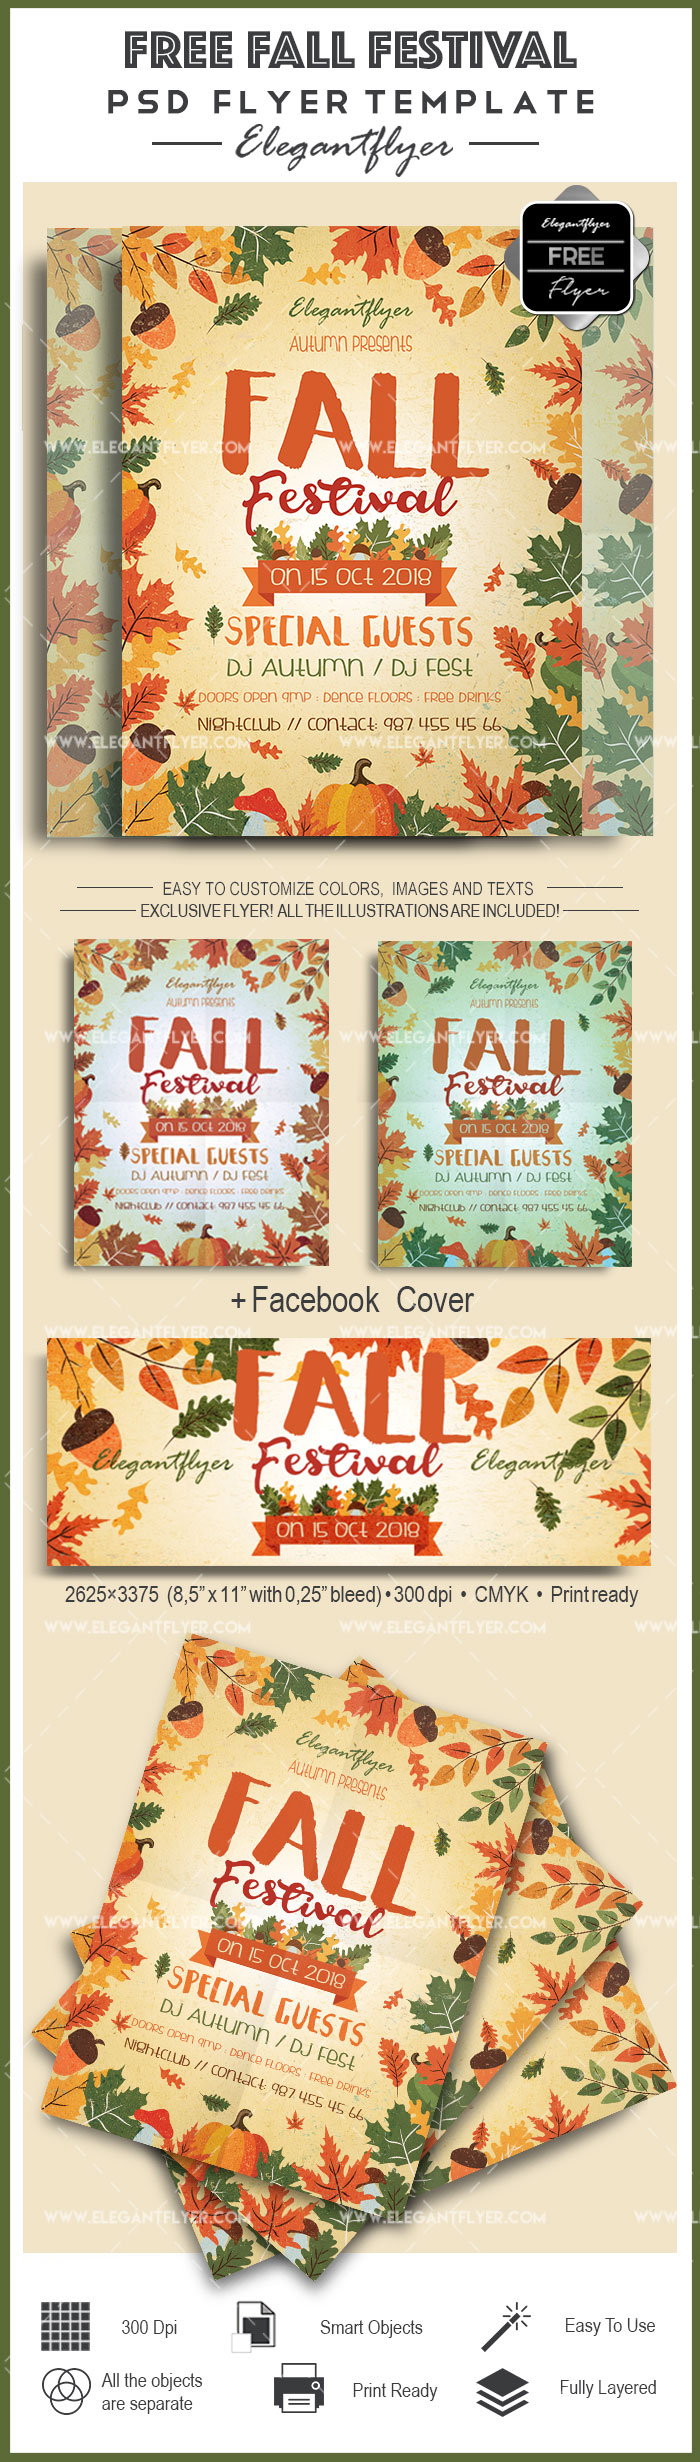 Fall Festival – Free Flyer PSD Template